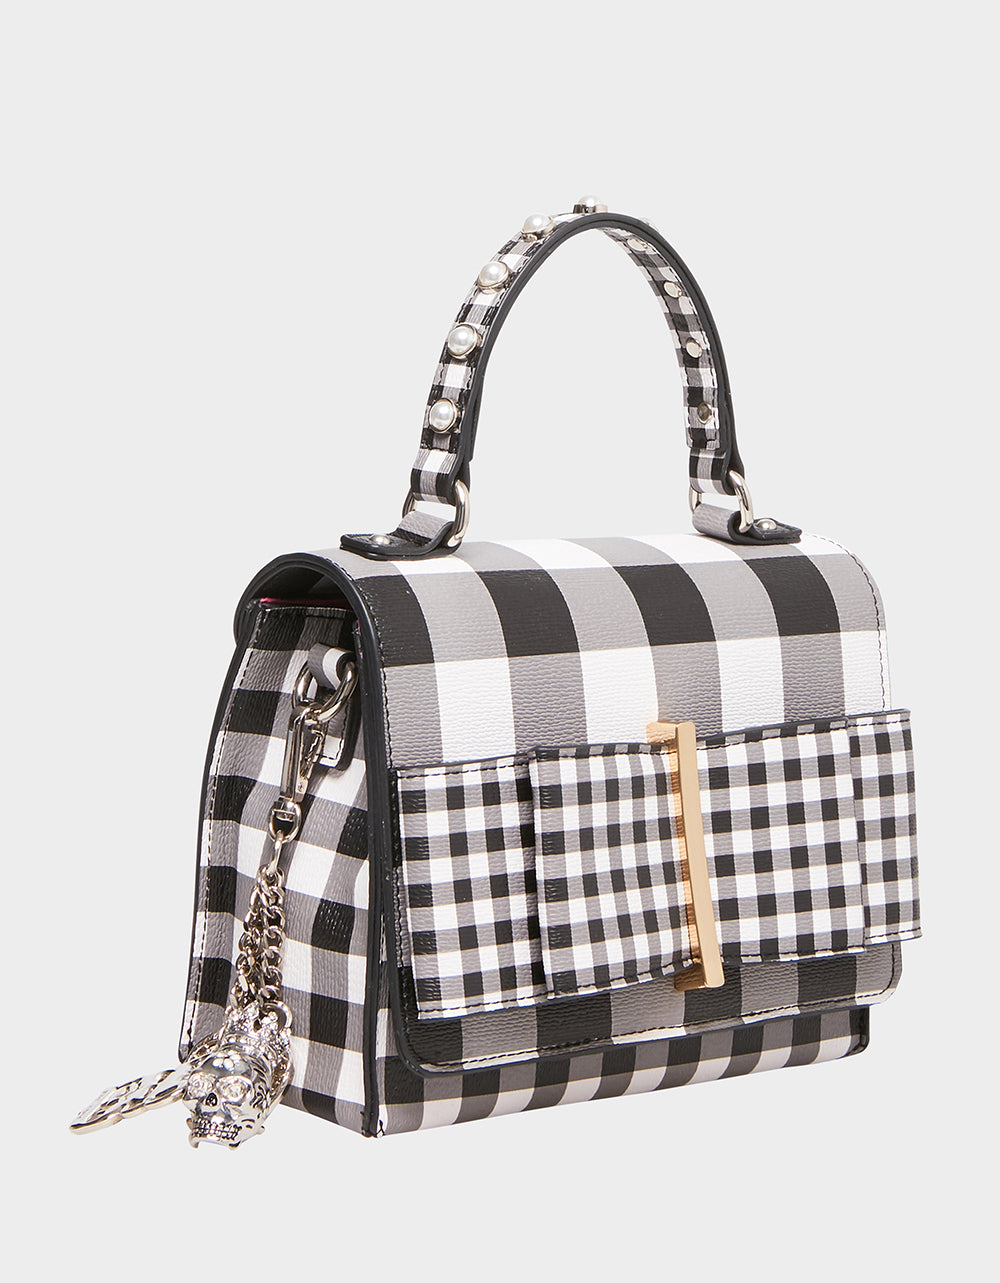 Betsey Johnson BOWING OUT GINGHAM CROSSBODY BAG in BLACK-WHITE